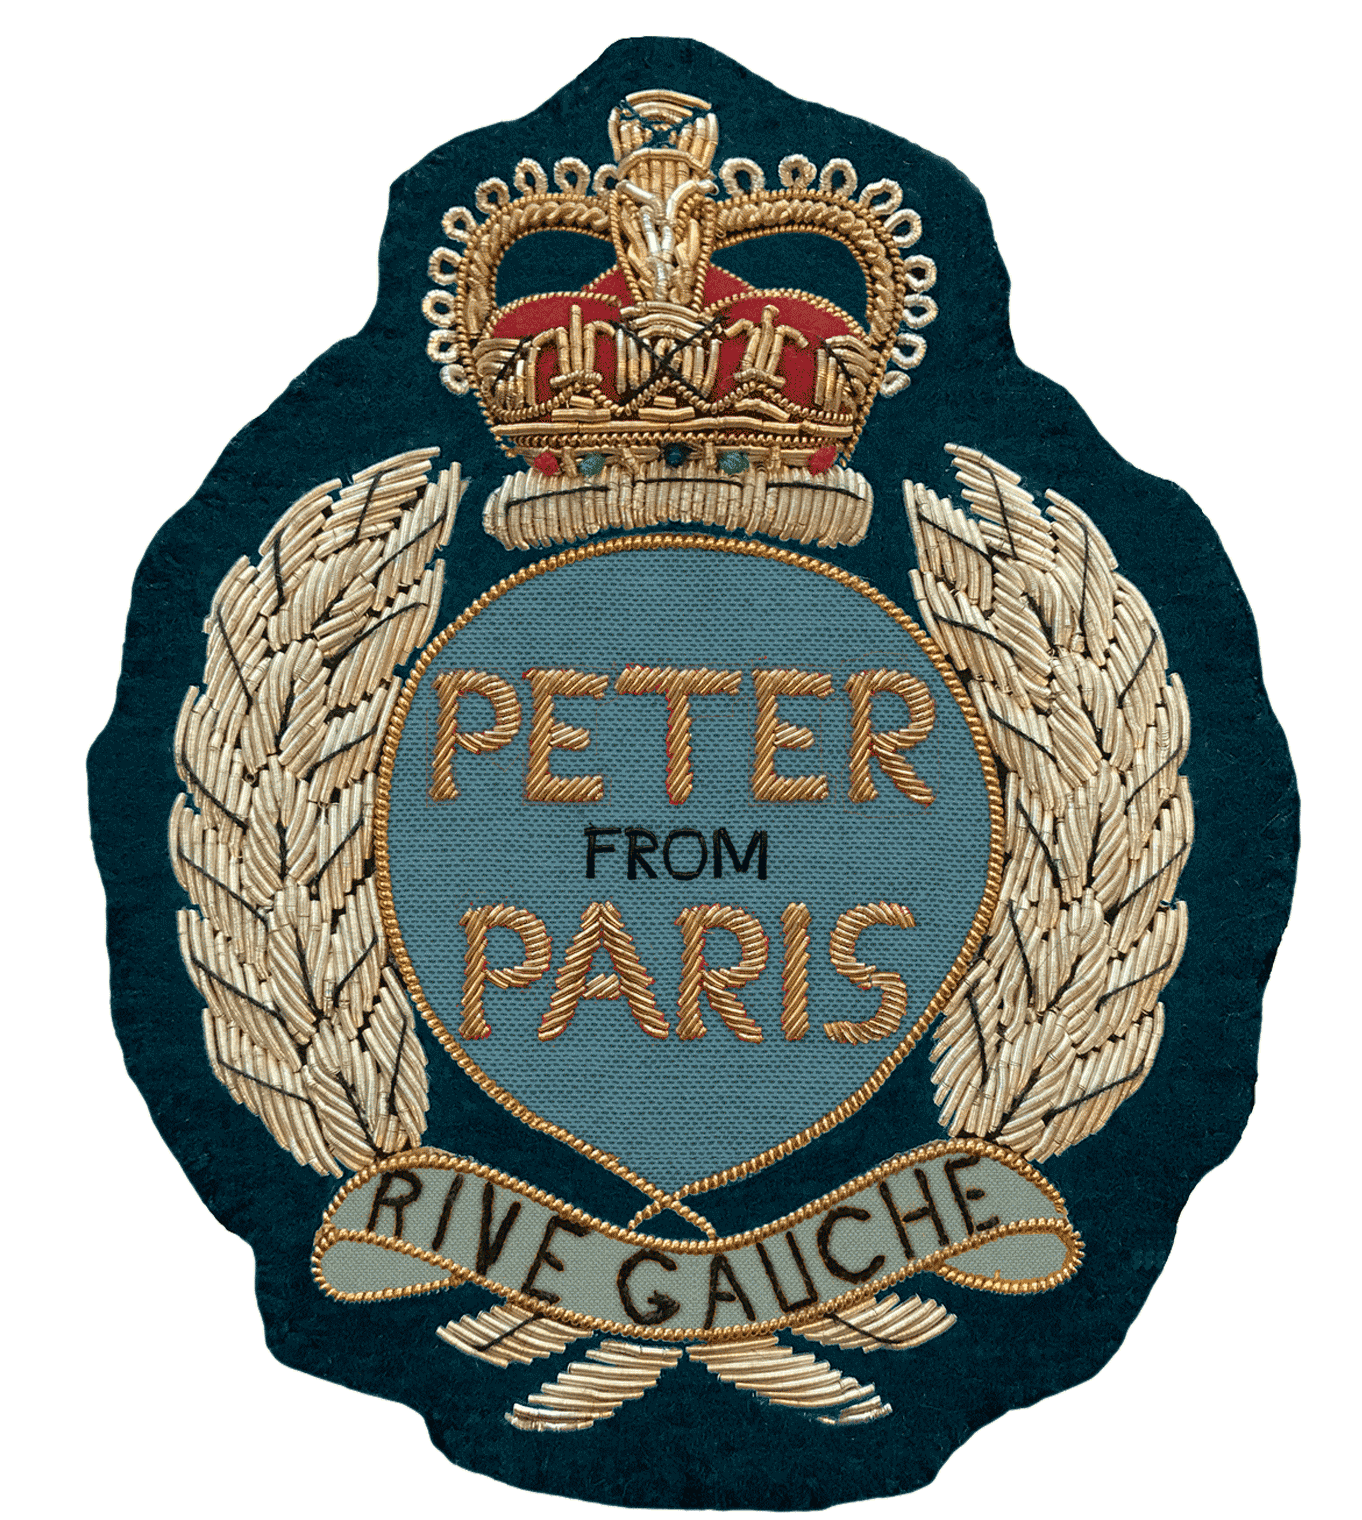 Peter from Paris